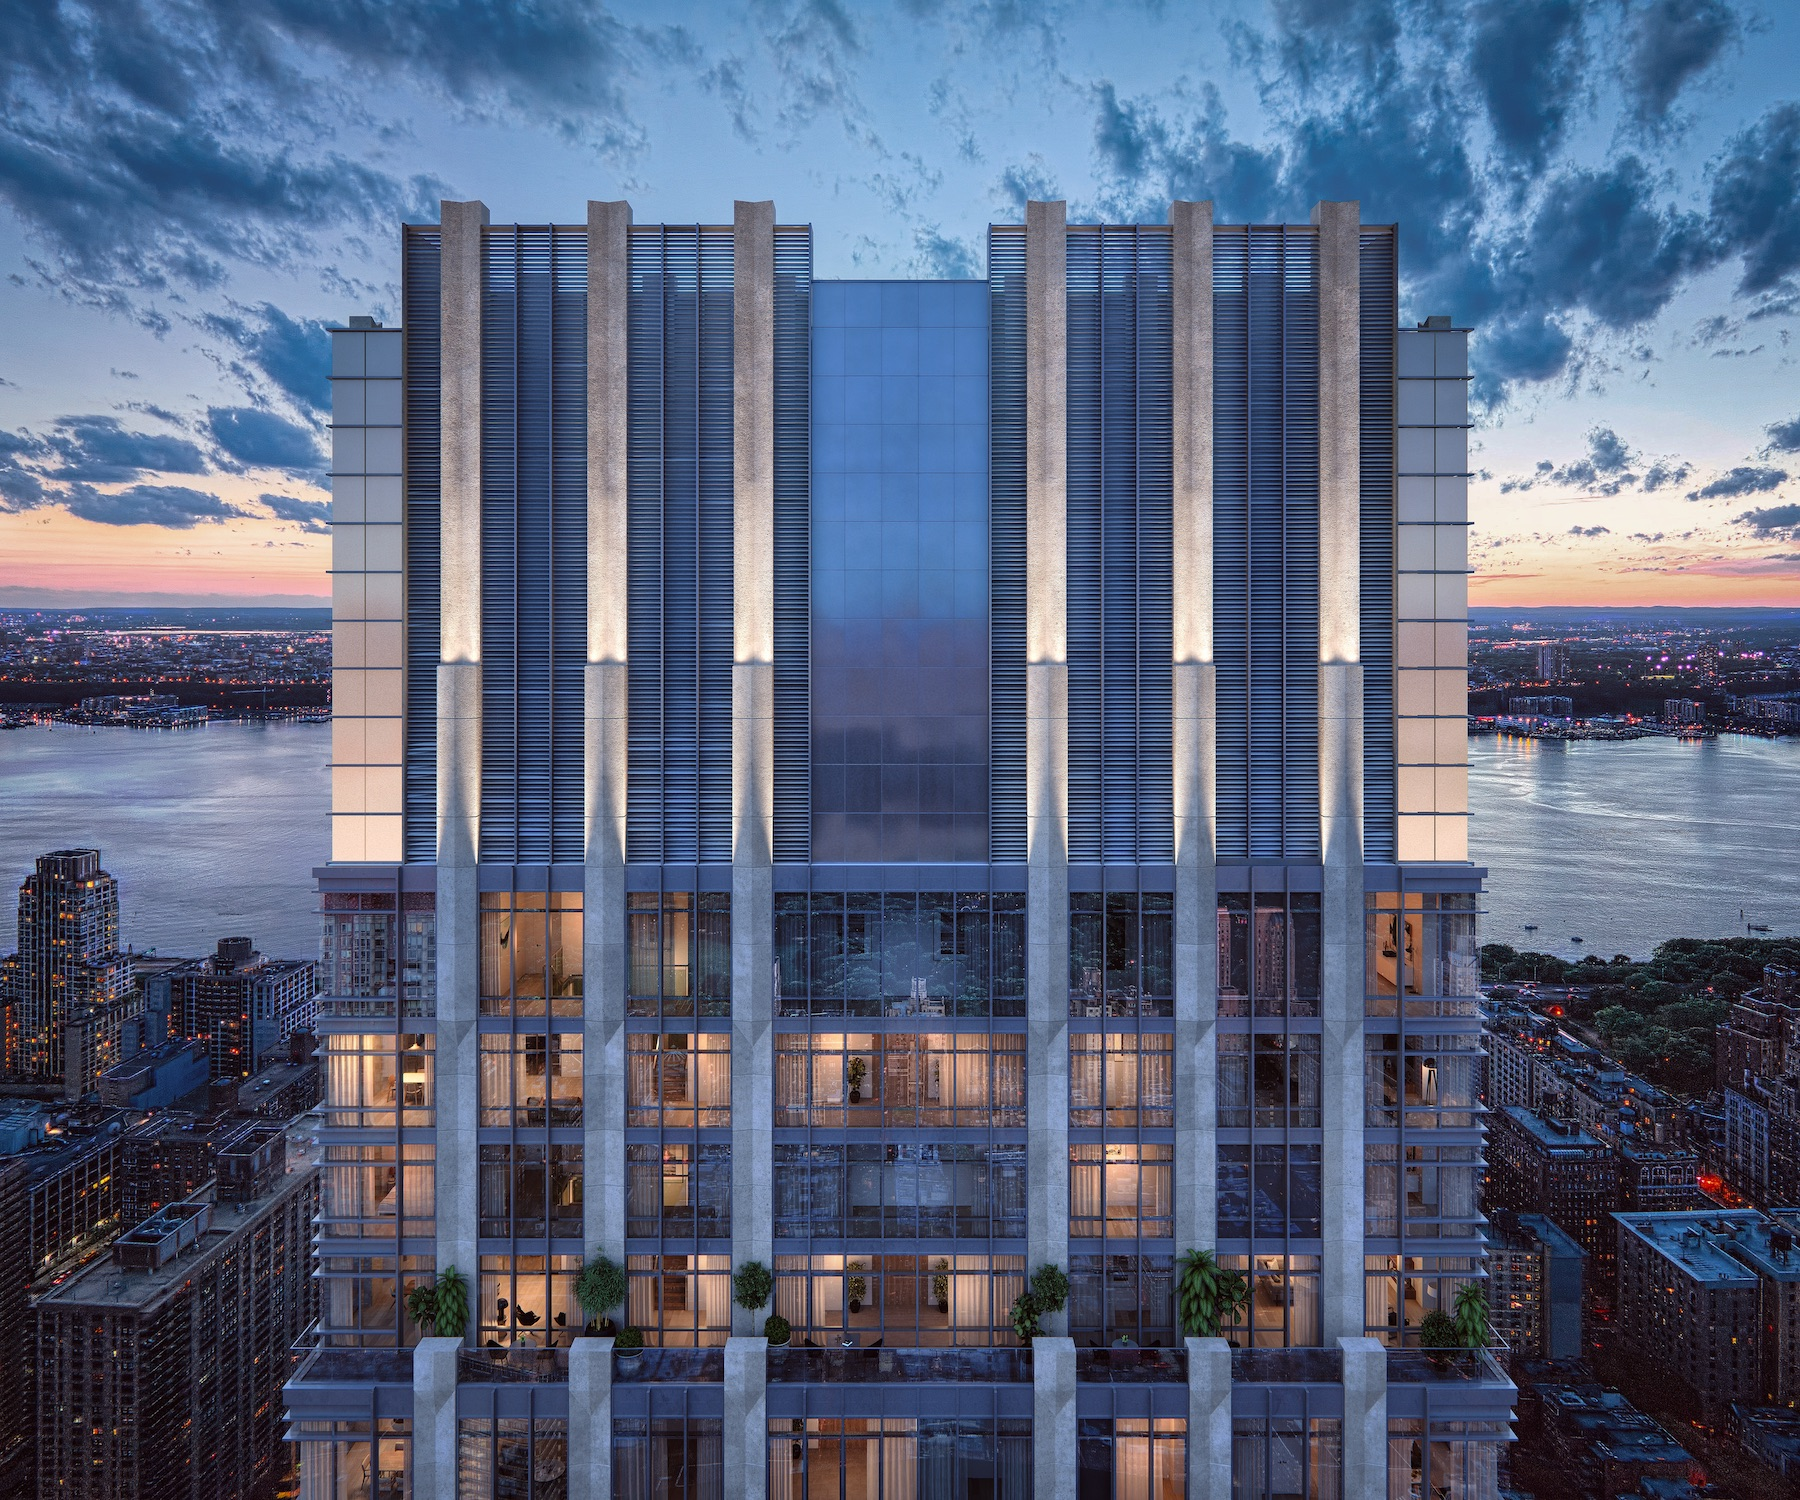 A digital rendering of a stone and glass tower in the Upper West Side of Manhattan.